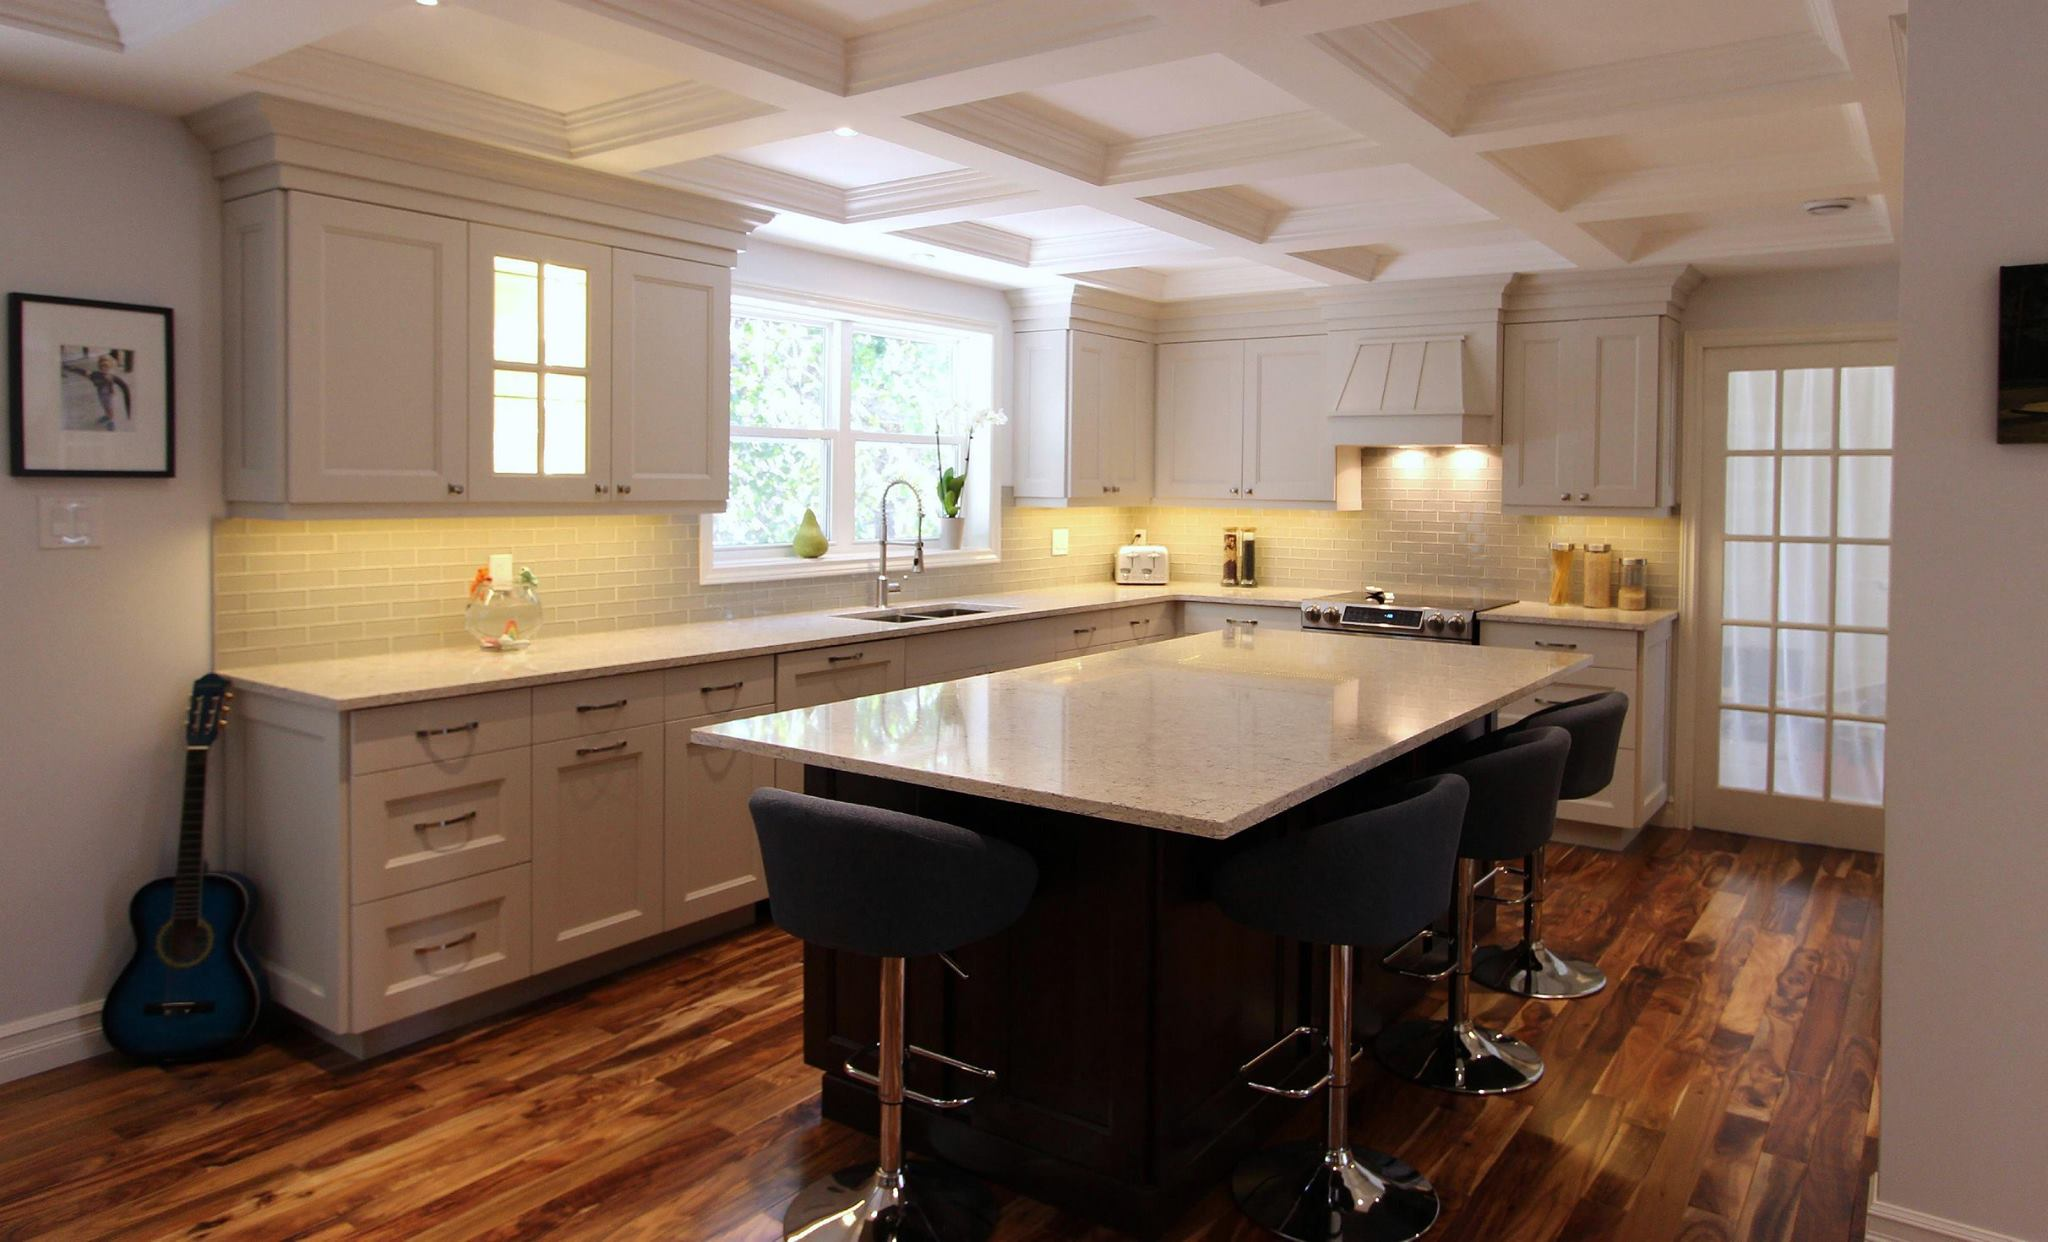 01 Feb Kitchen Design Plus Of Halifax Awarded Best Of Houzz 2017